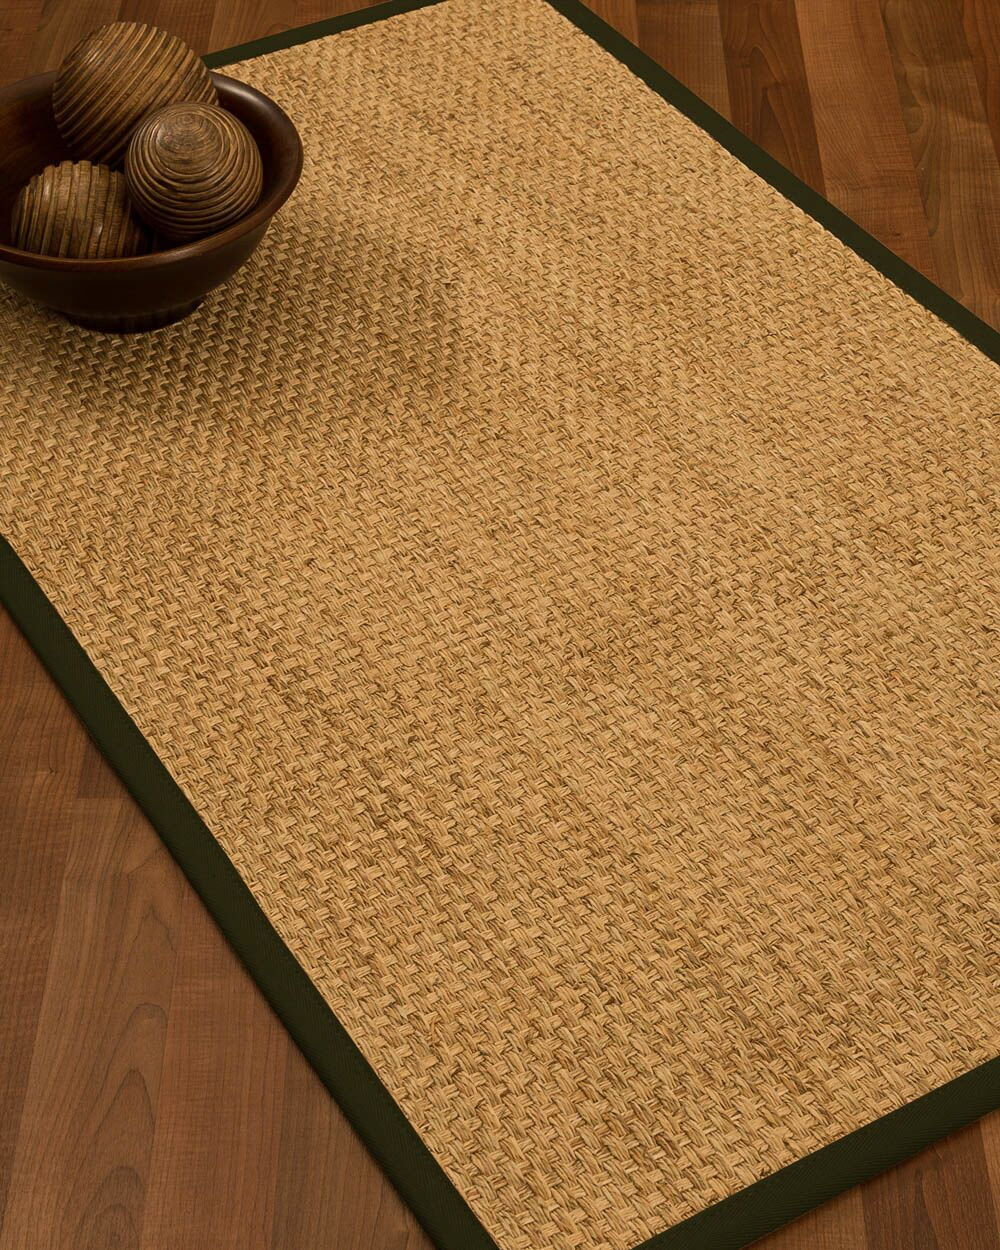 Caster Border Hand-Woven Beige/Moss Area Rug Rug Size: Rectangle 9' x 12', Rug Pad Included: Yes